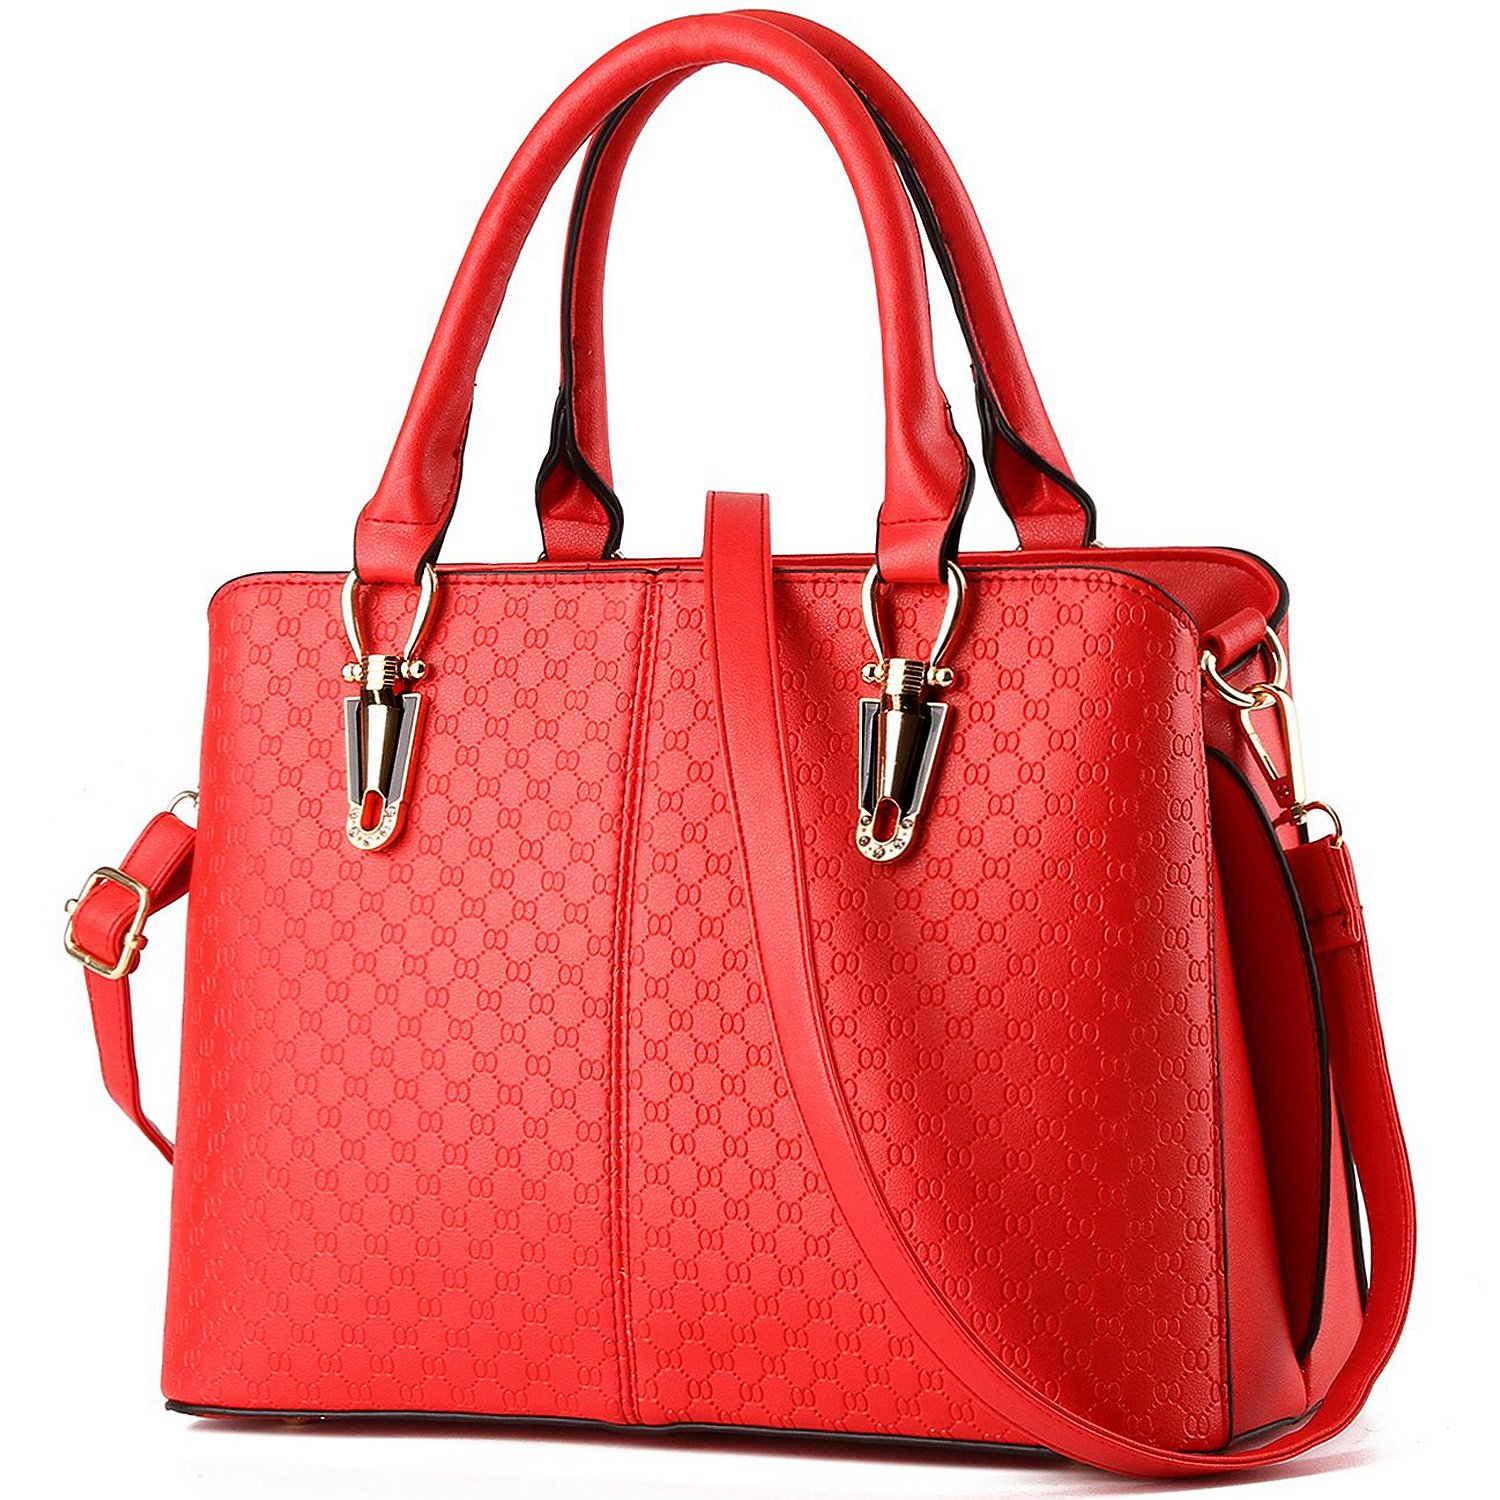 84b7ef0b5ece8 TcIFE Women Top Handle Satchel Handbags Tote Purse, Red: Handbags:  Amazon.com